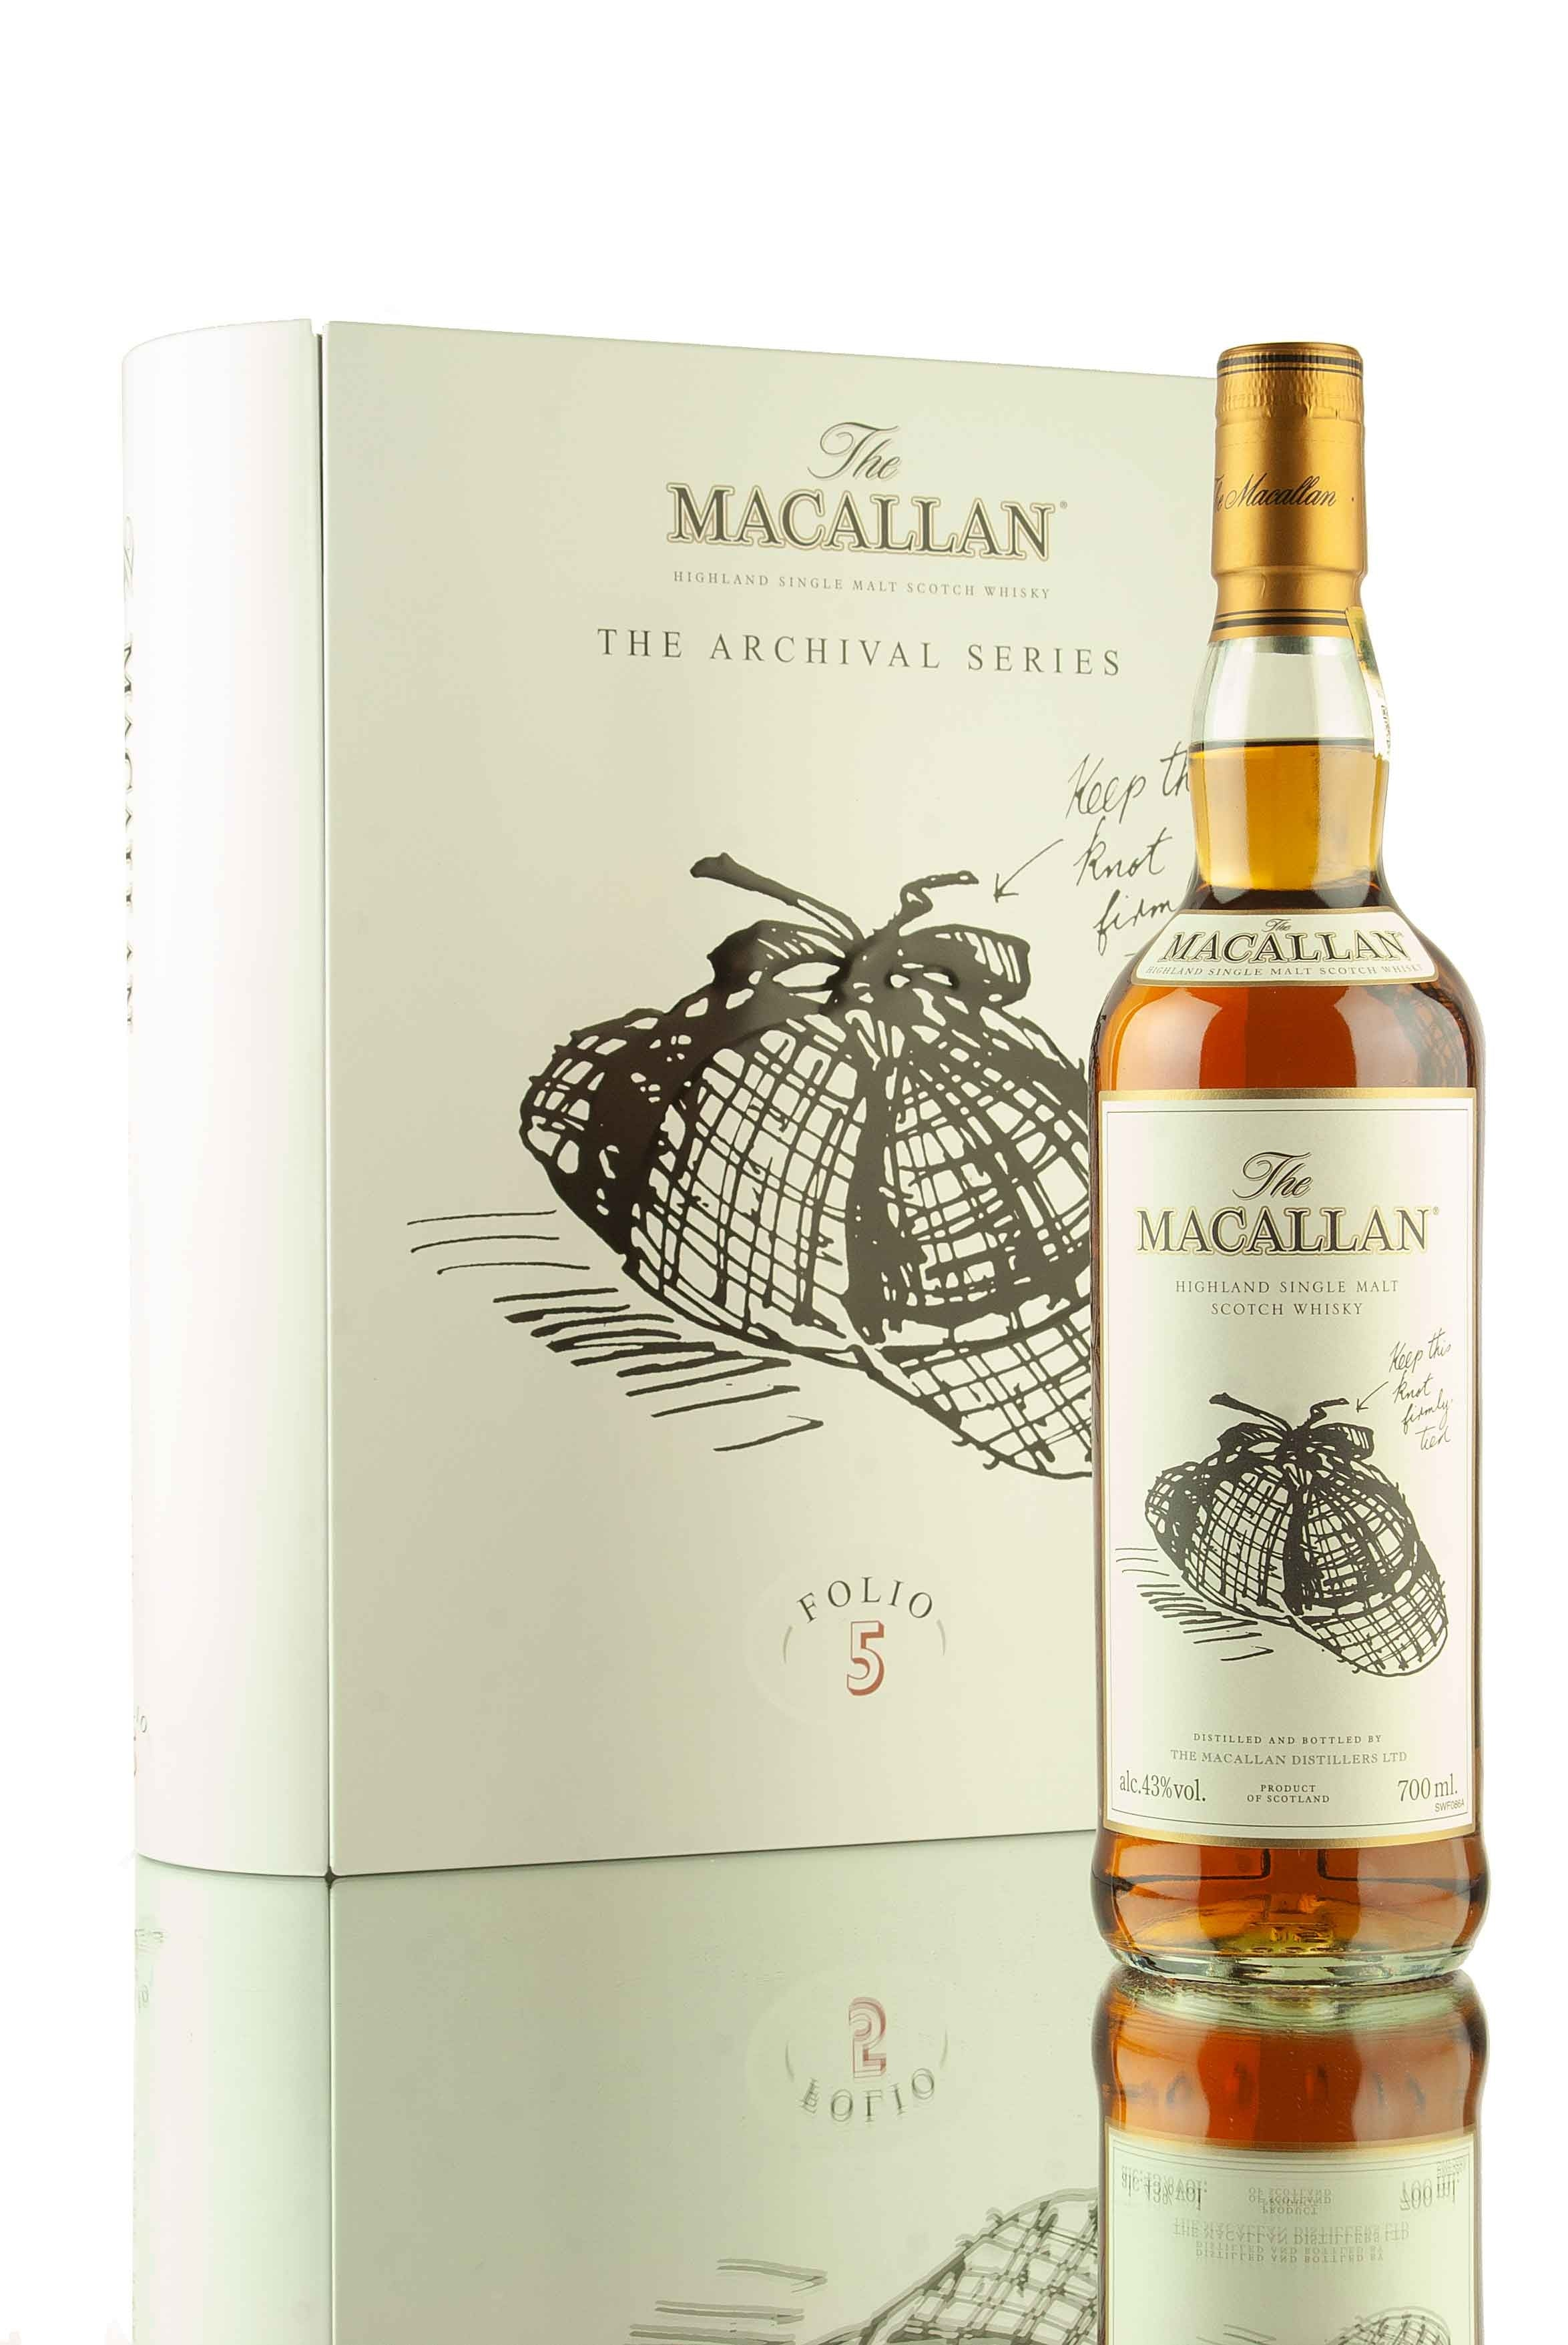 The Macallan Folio 5 | The Archival Series